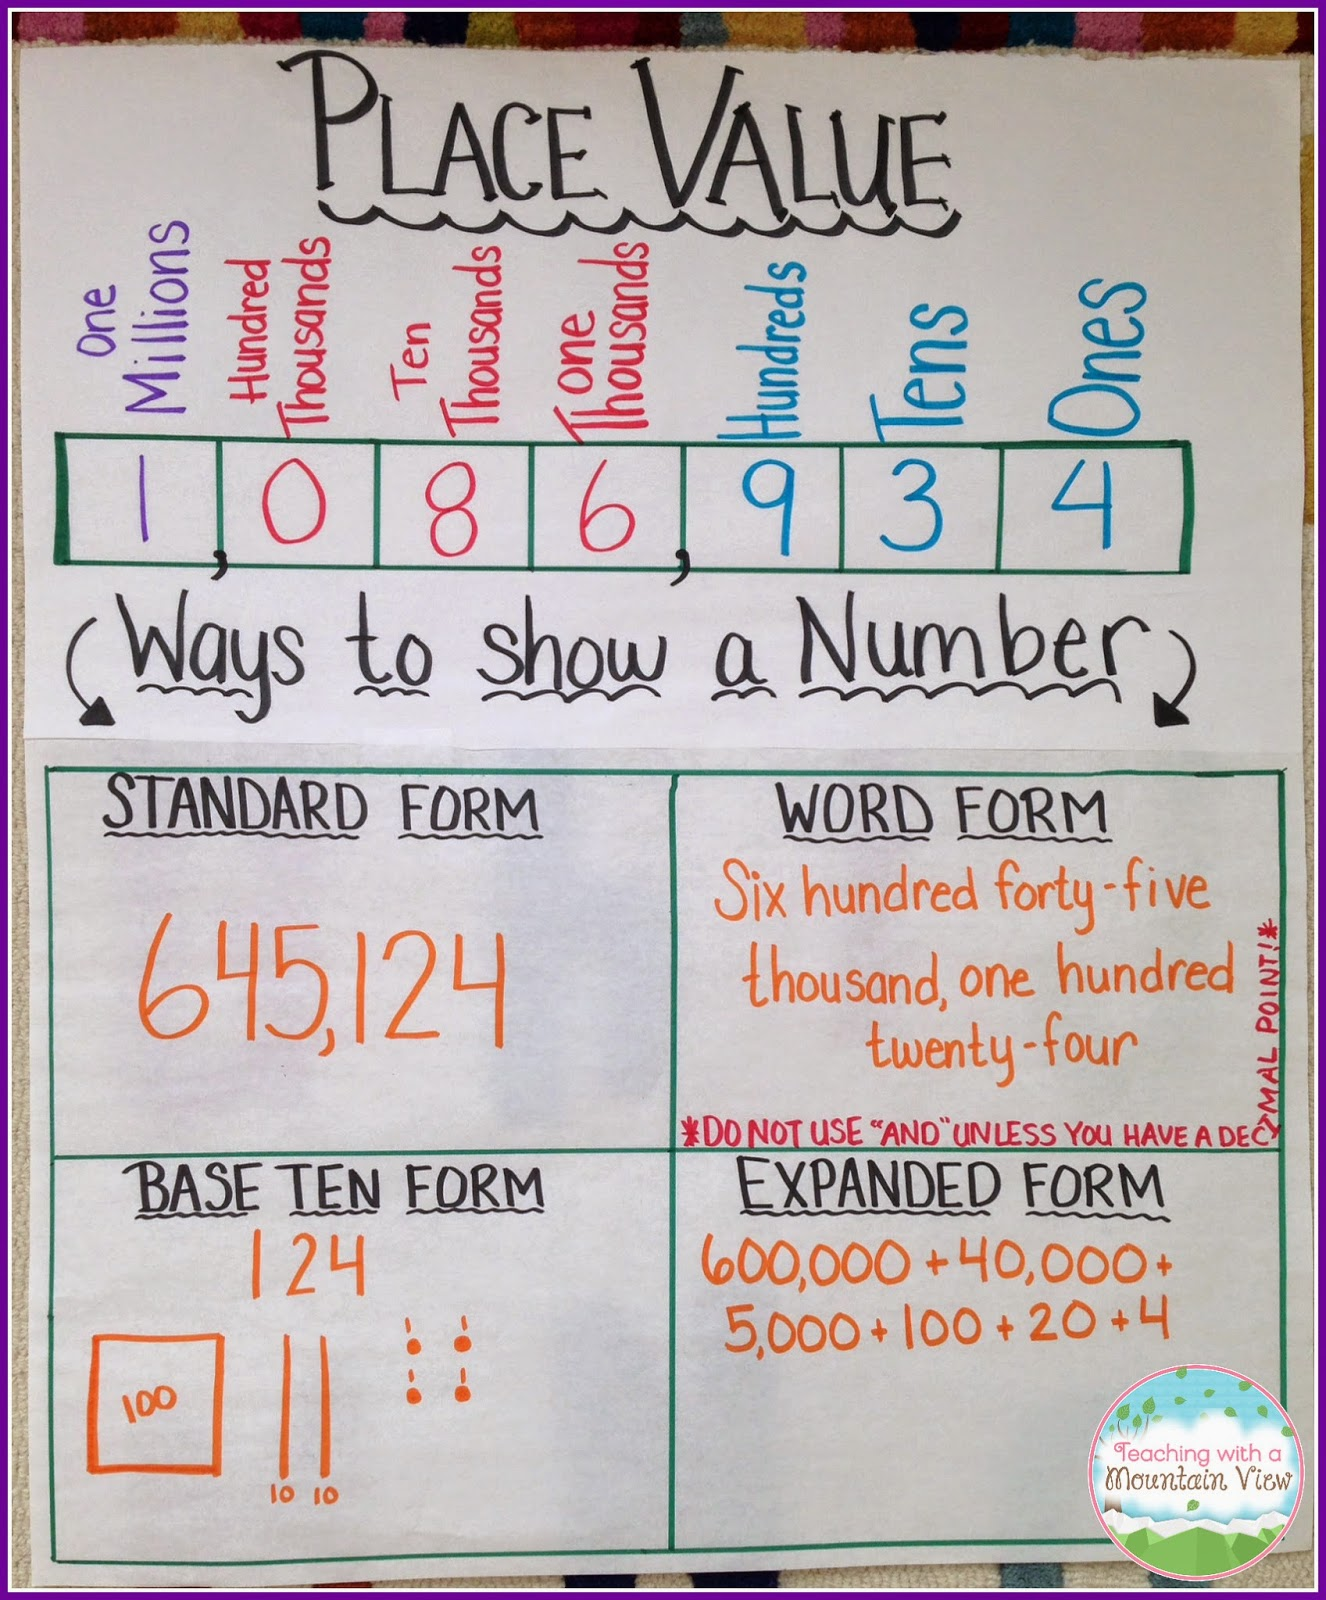 Worksheet Place Value For 3rd Grade teaching with a mountain view place value here is what the anchor chart looks like when we are done its very basic one but it works for me there tons of other cute